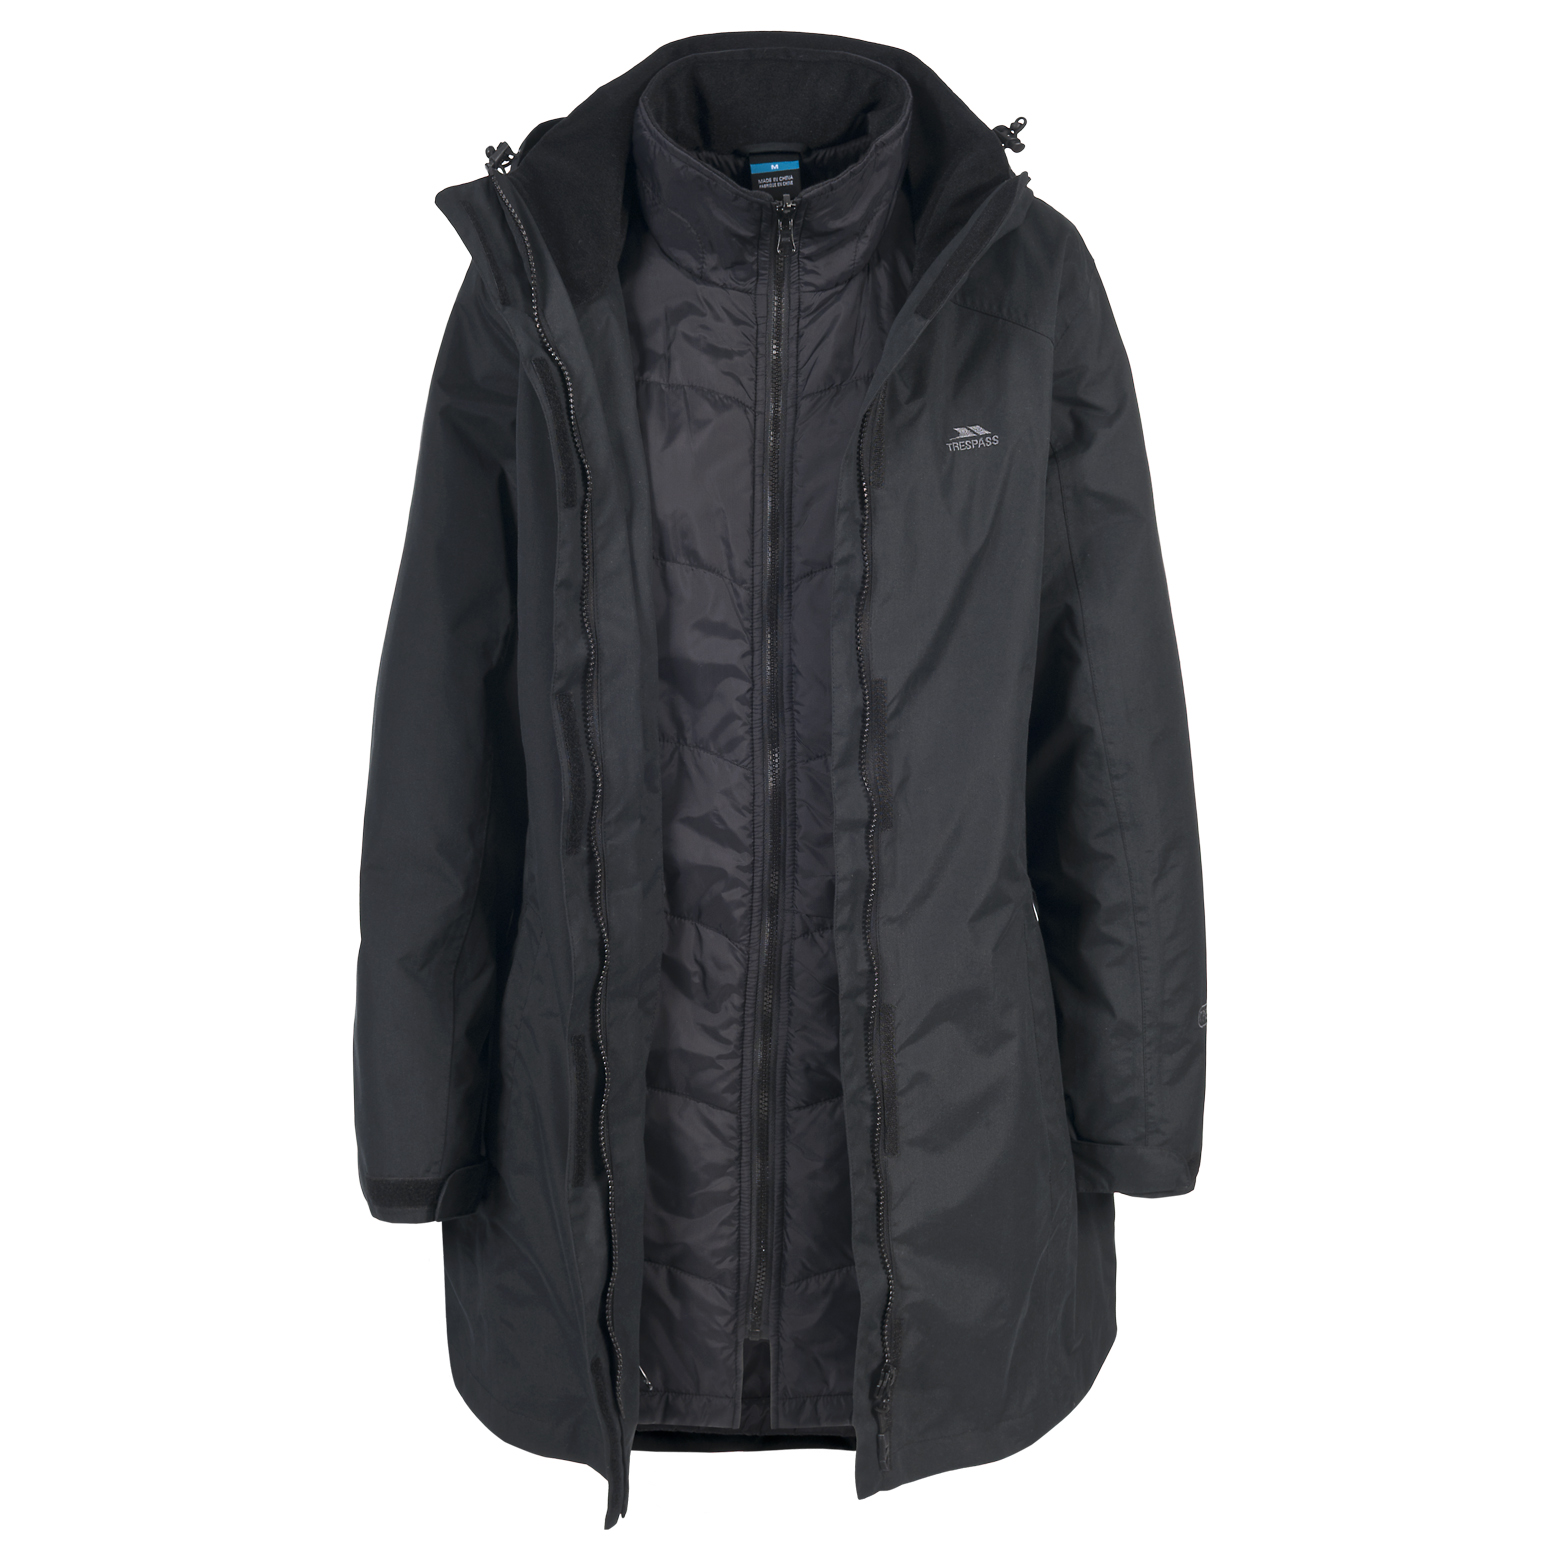 Shop our women's 3 in 1 jackets with huge savings off RRP. Our ladies 3 in 1 jackets feature built in fleeces, perfect for keeping warm during colder months. Grab a fantastic winter coat at a bargain price with our 3 in 1 jacket clearance sale.